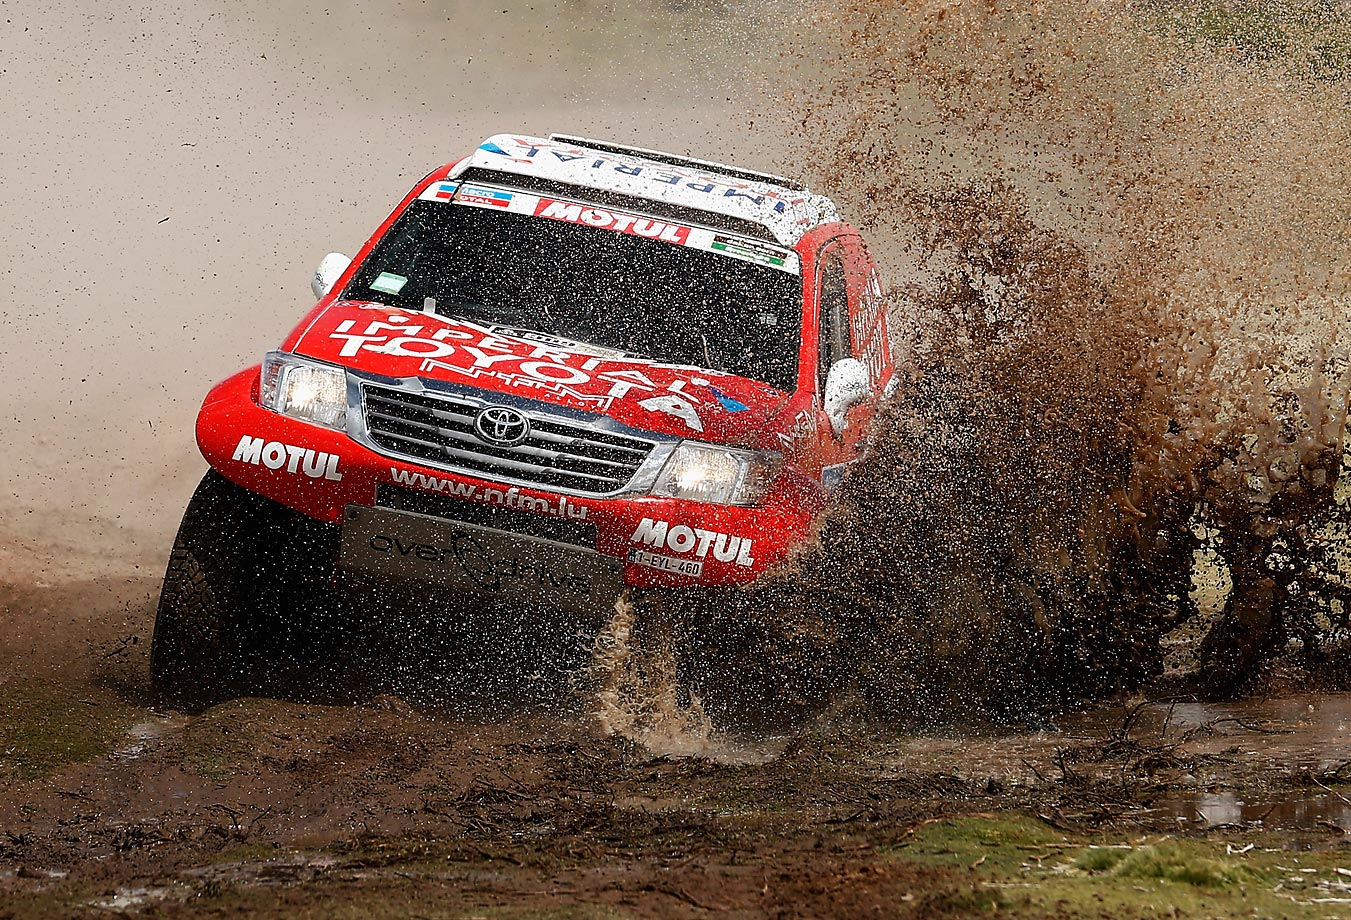 Christian Lavielle and Pascal Maimon of France driving for Overdrive Toyota Hilux compete during day 7 of the Dakar Rally.